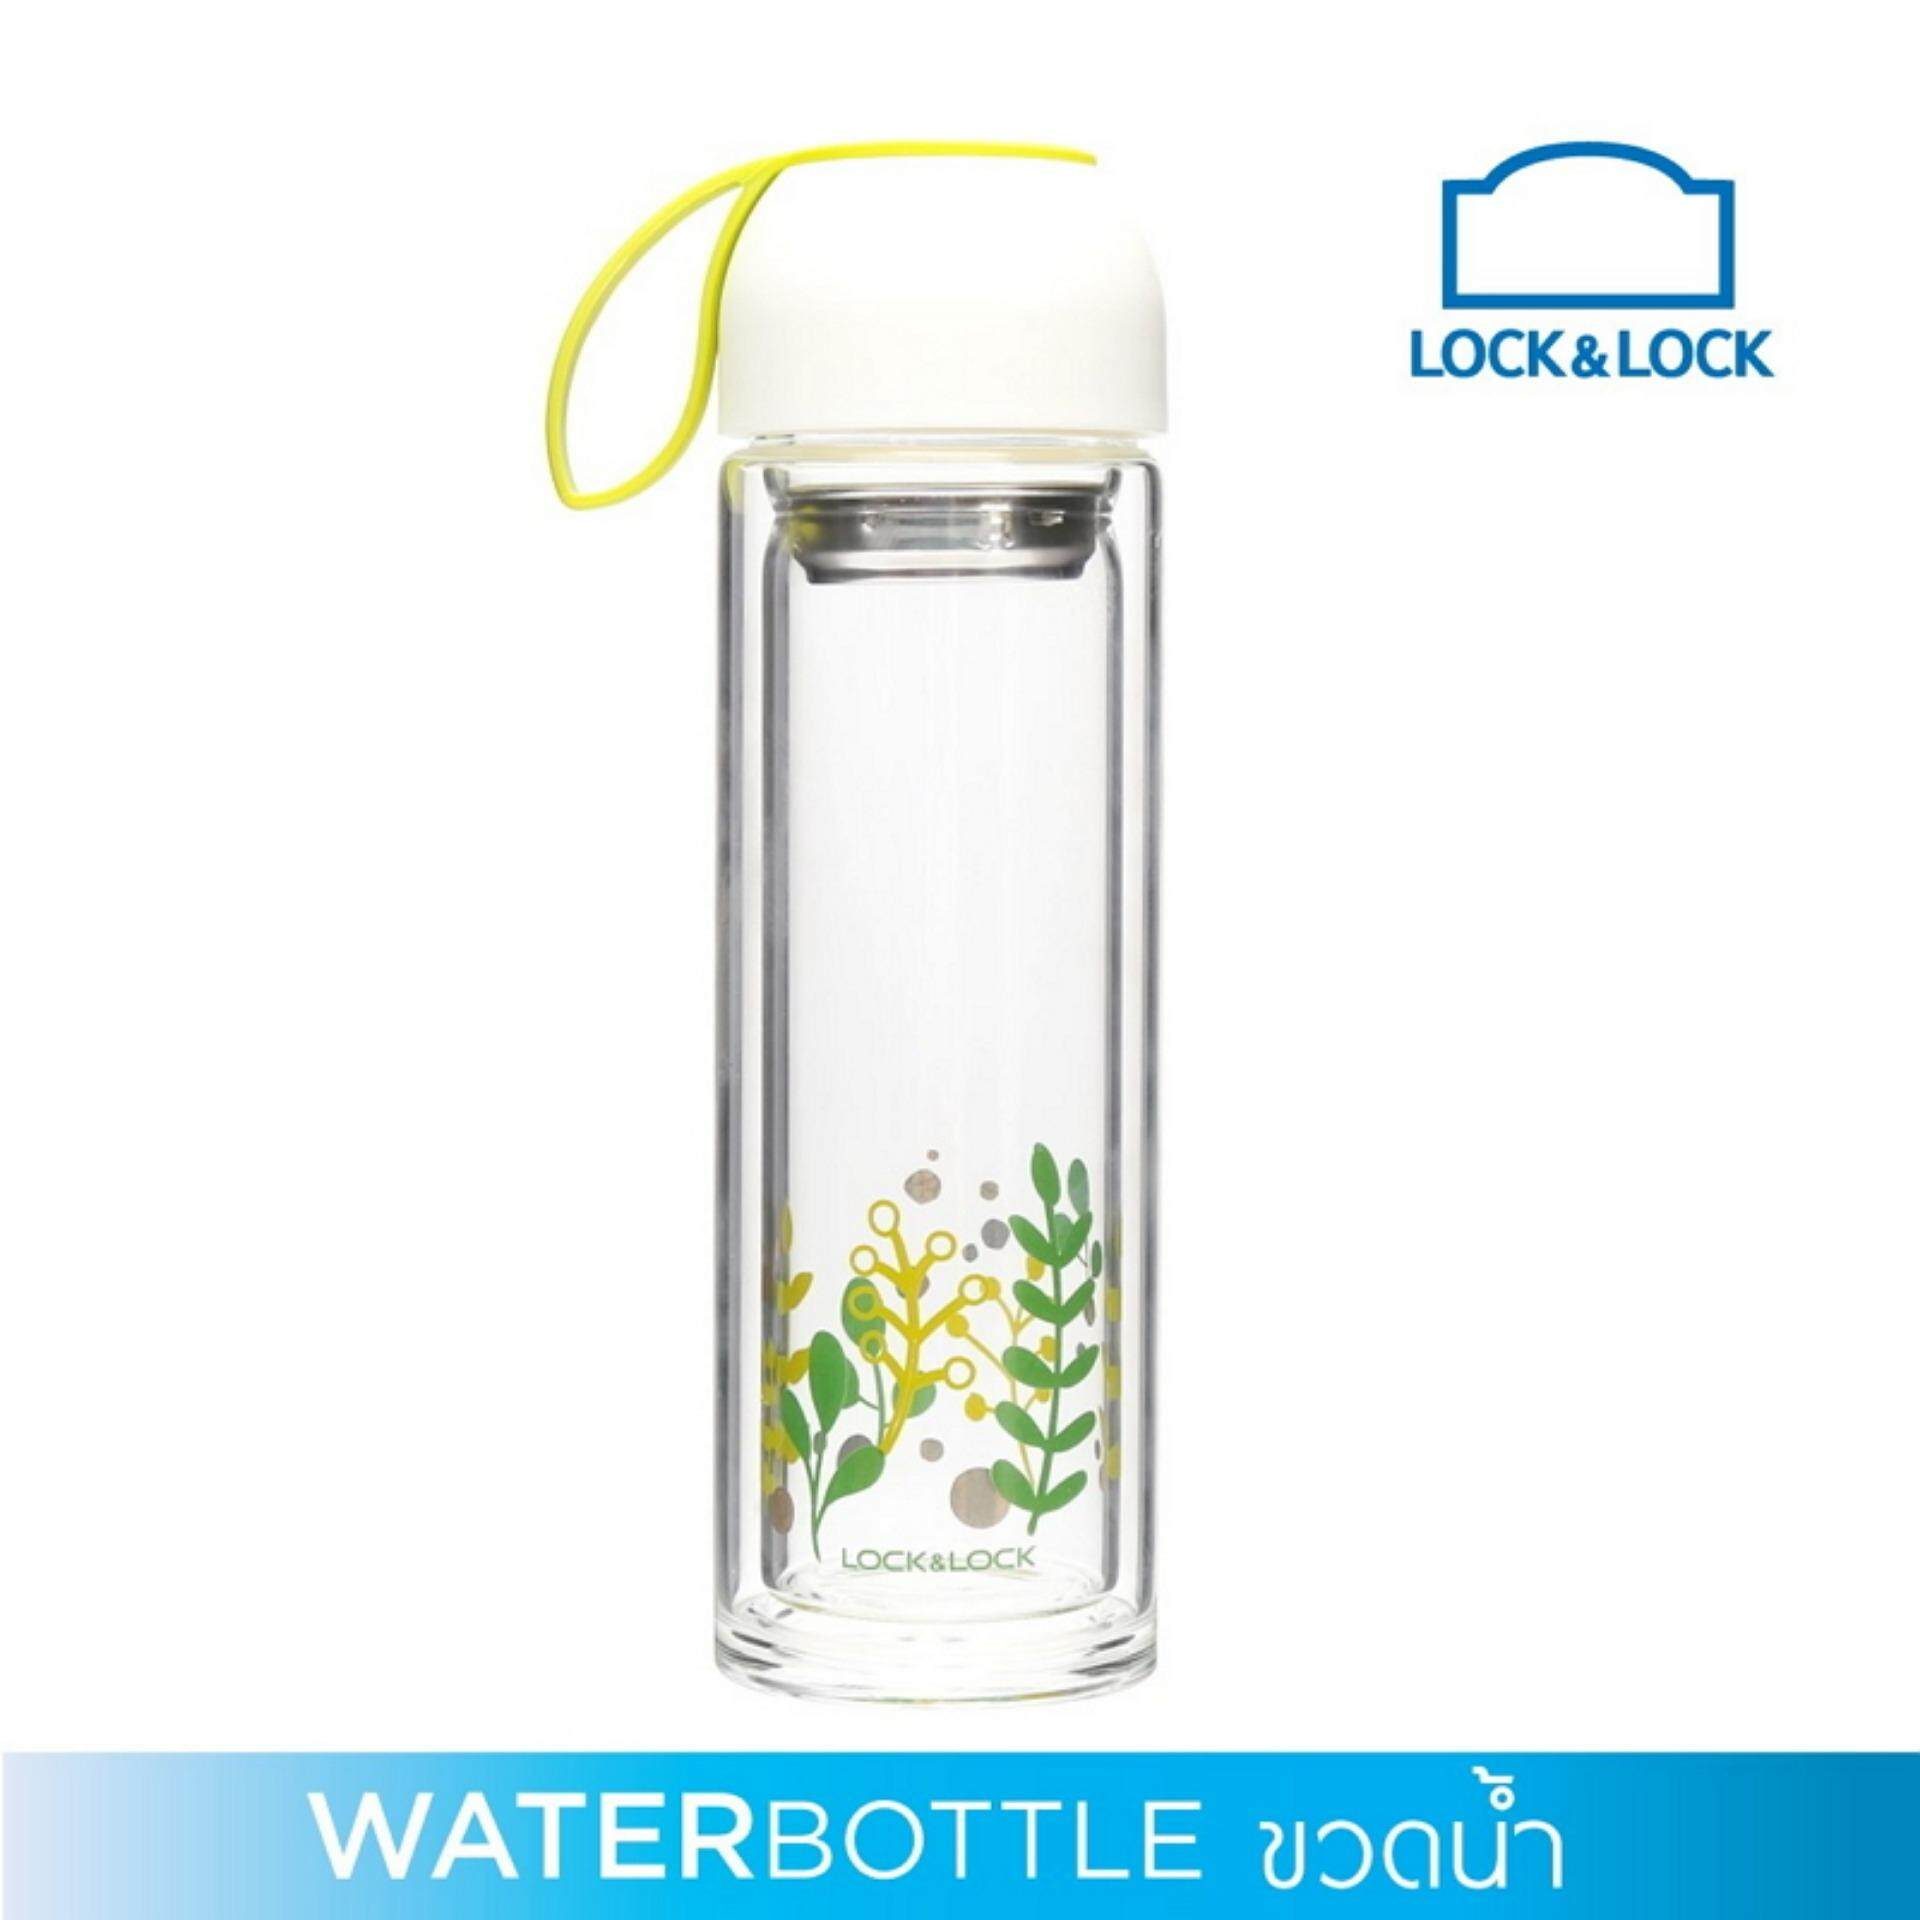 Sell Lock Cheapest Best Quality Th Store Locklock Chess Water Bottle Pet 10l Hap810 Thb 449